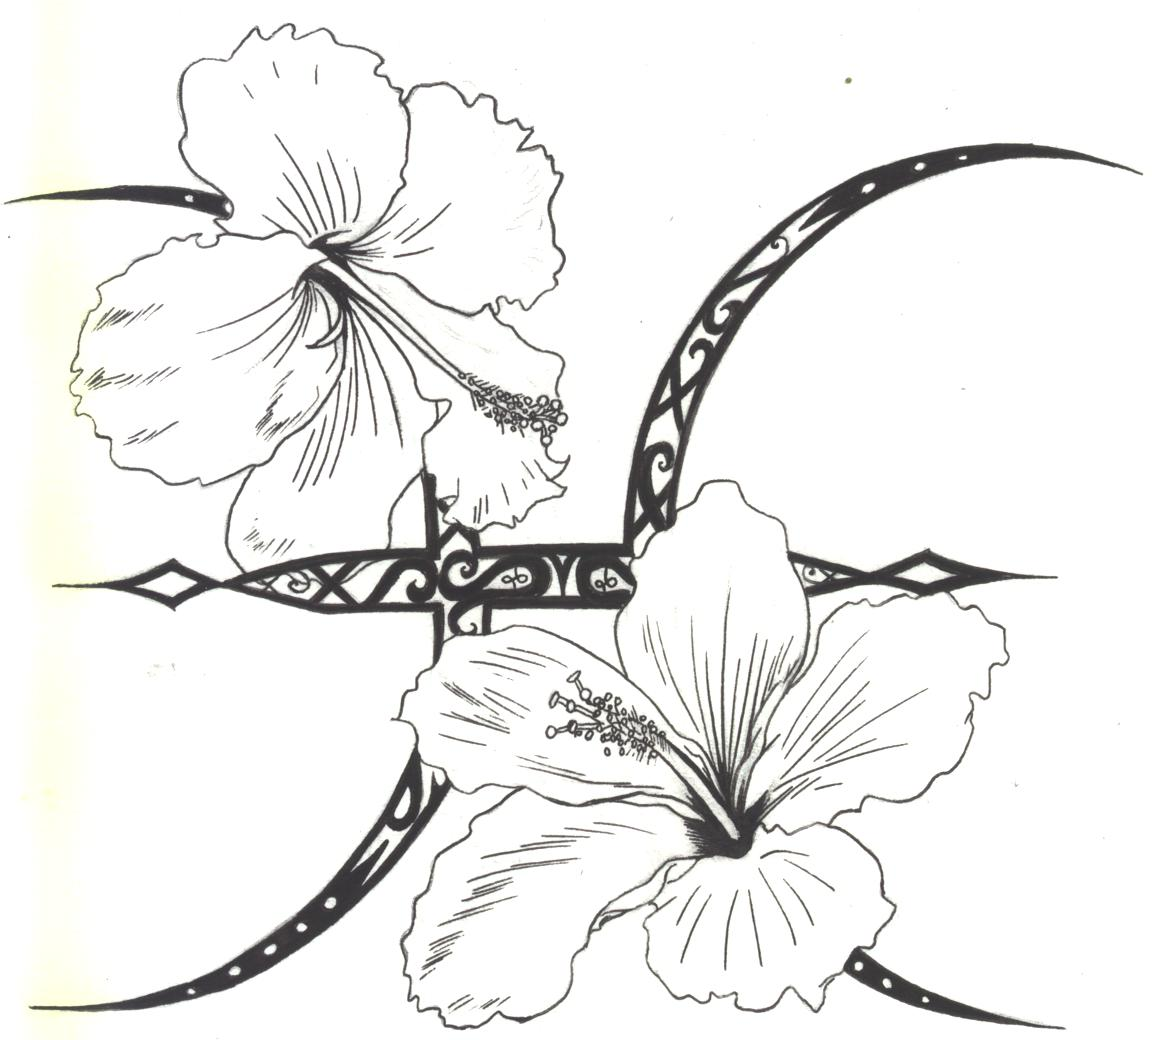 50 zodiac sign with flowers tattoos awesome pisces zodiac sign with hibiscus flowers tattoo stencil by d angeline izmirmasajfo Images